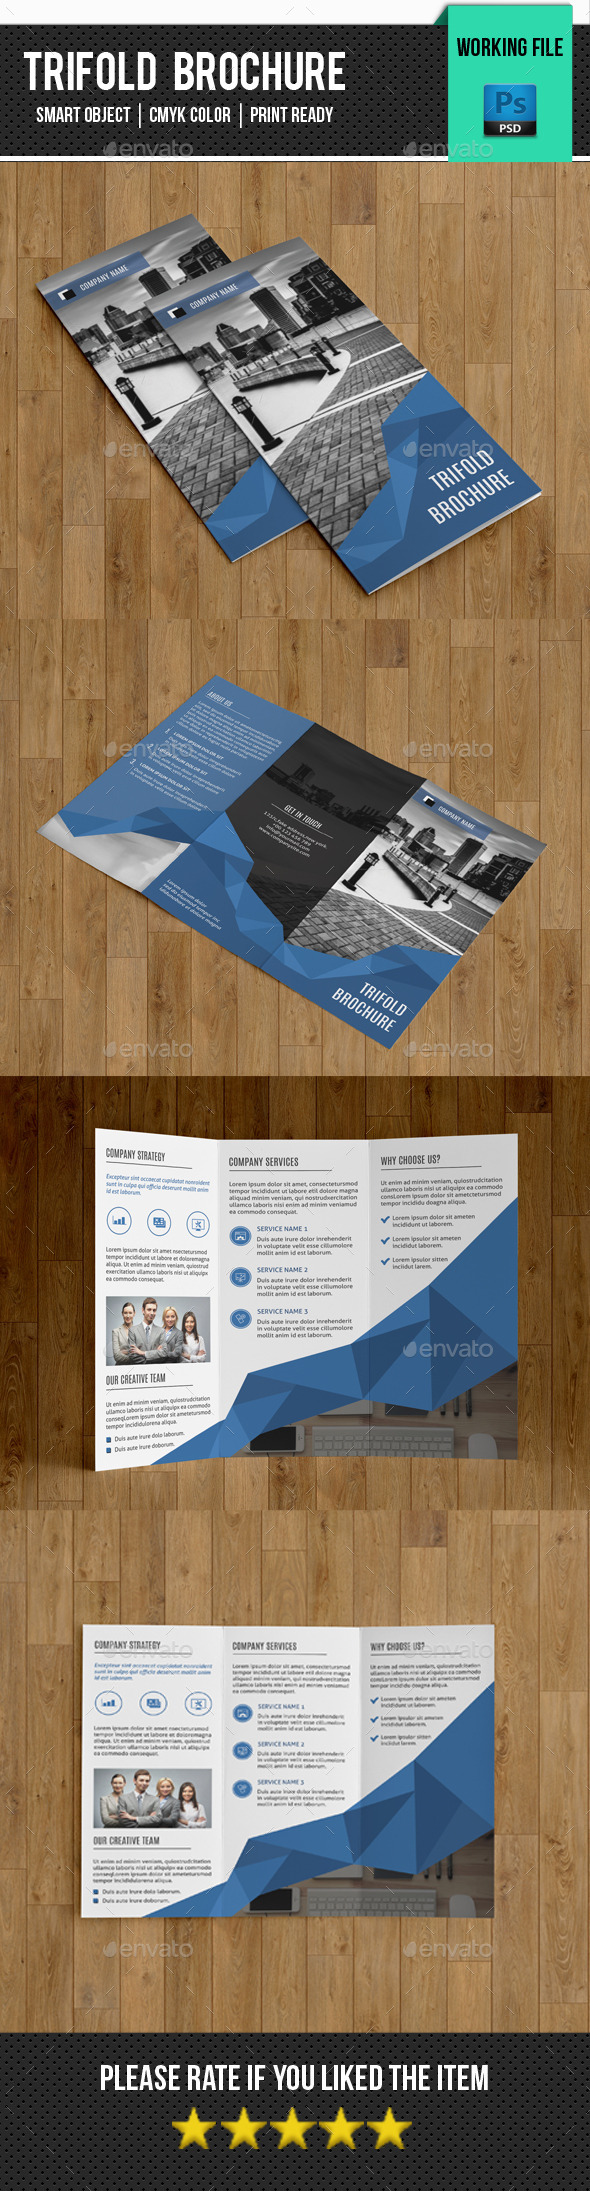 Corporate Trifold Brochure-V251 - Corporate Brochures